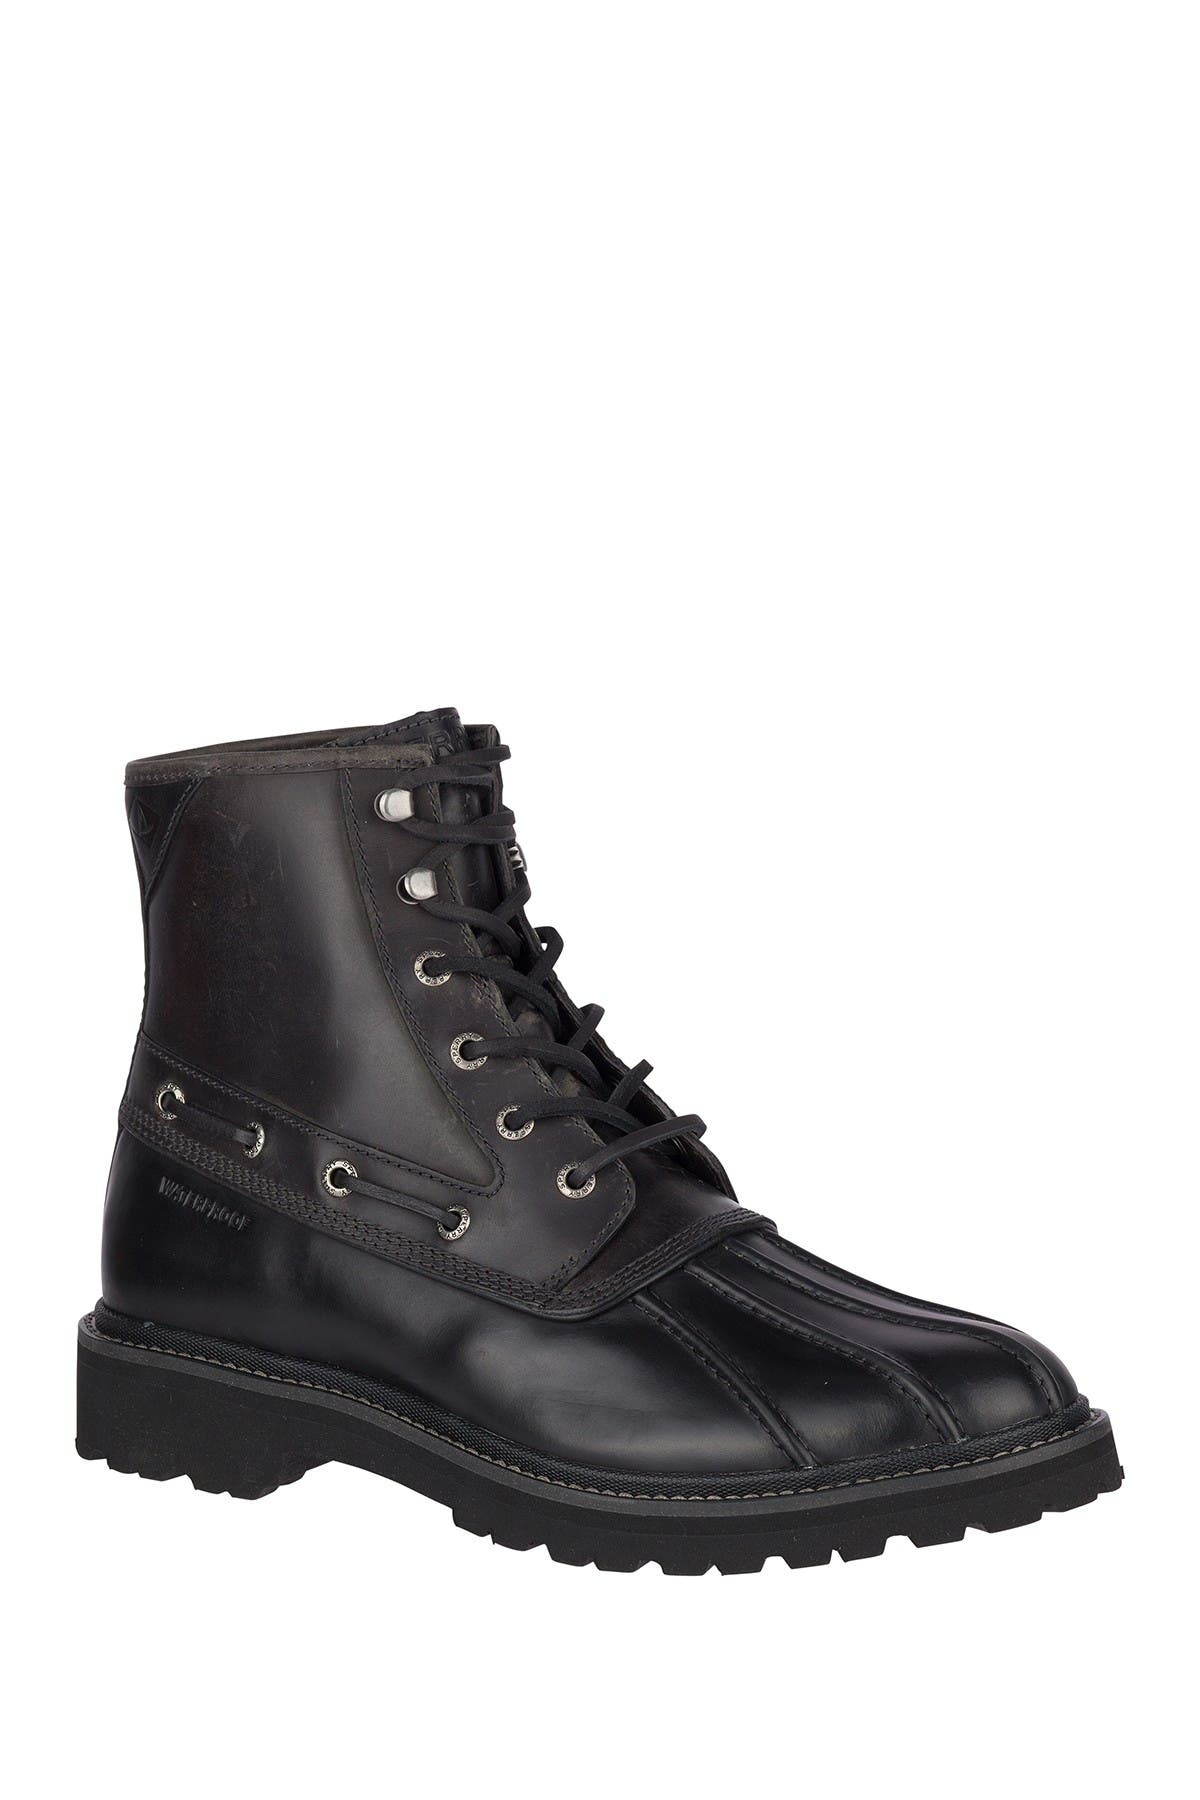 Gold Cup Waterproof Leather Duck Boot